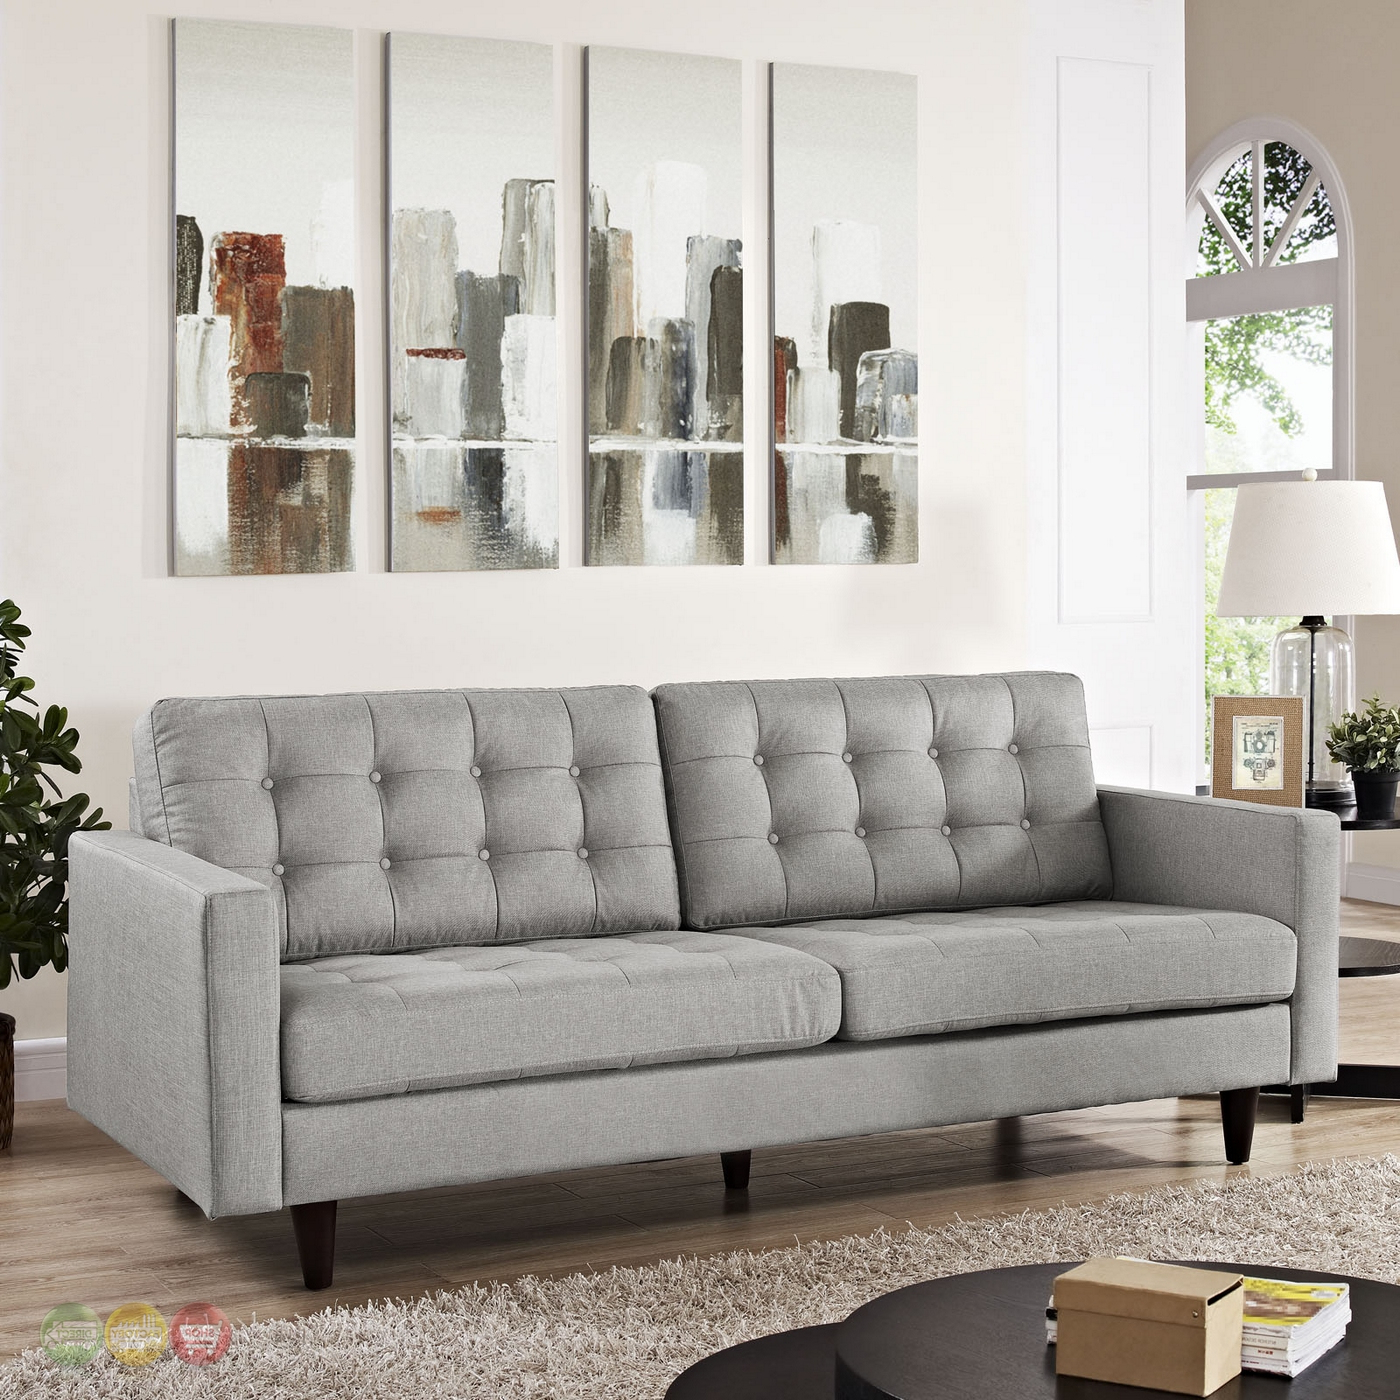 Preferred Gray Sofas With Regard To Empress Contemporary Button Tufted Upholstered Sofa, Light (View 13 of 20)